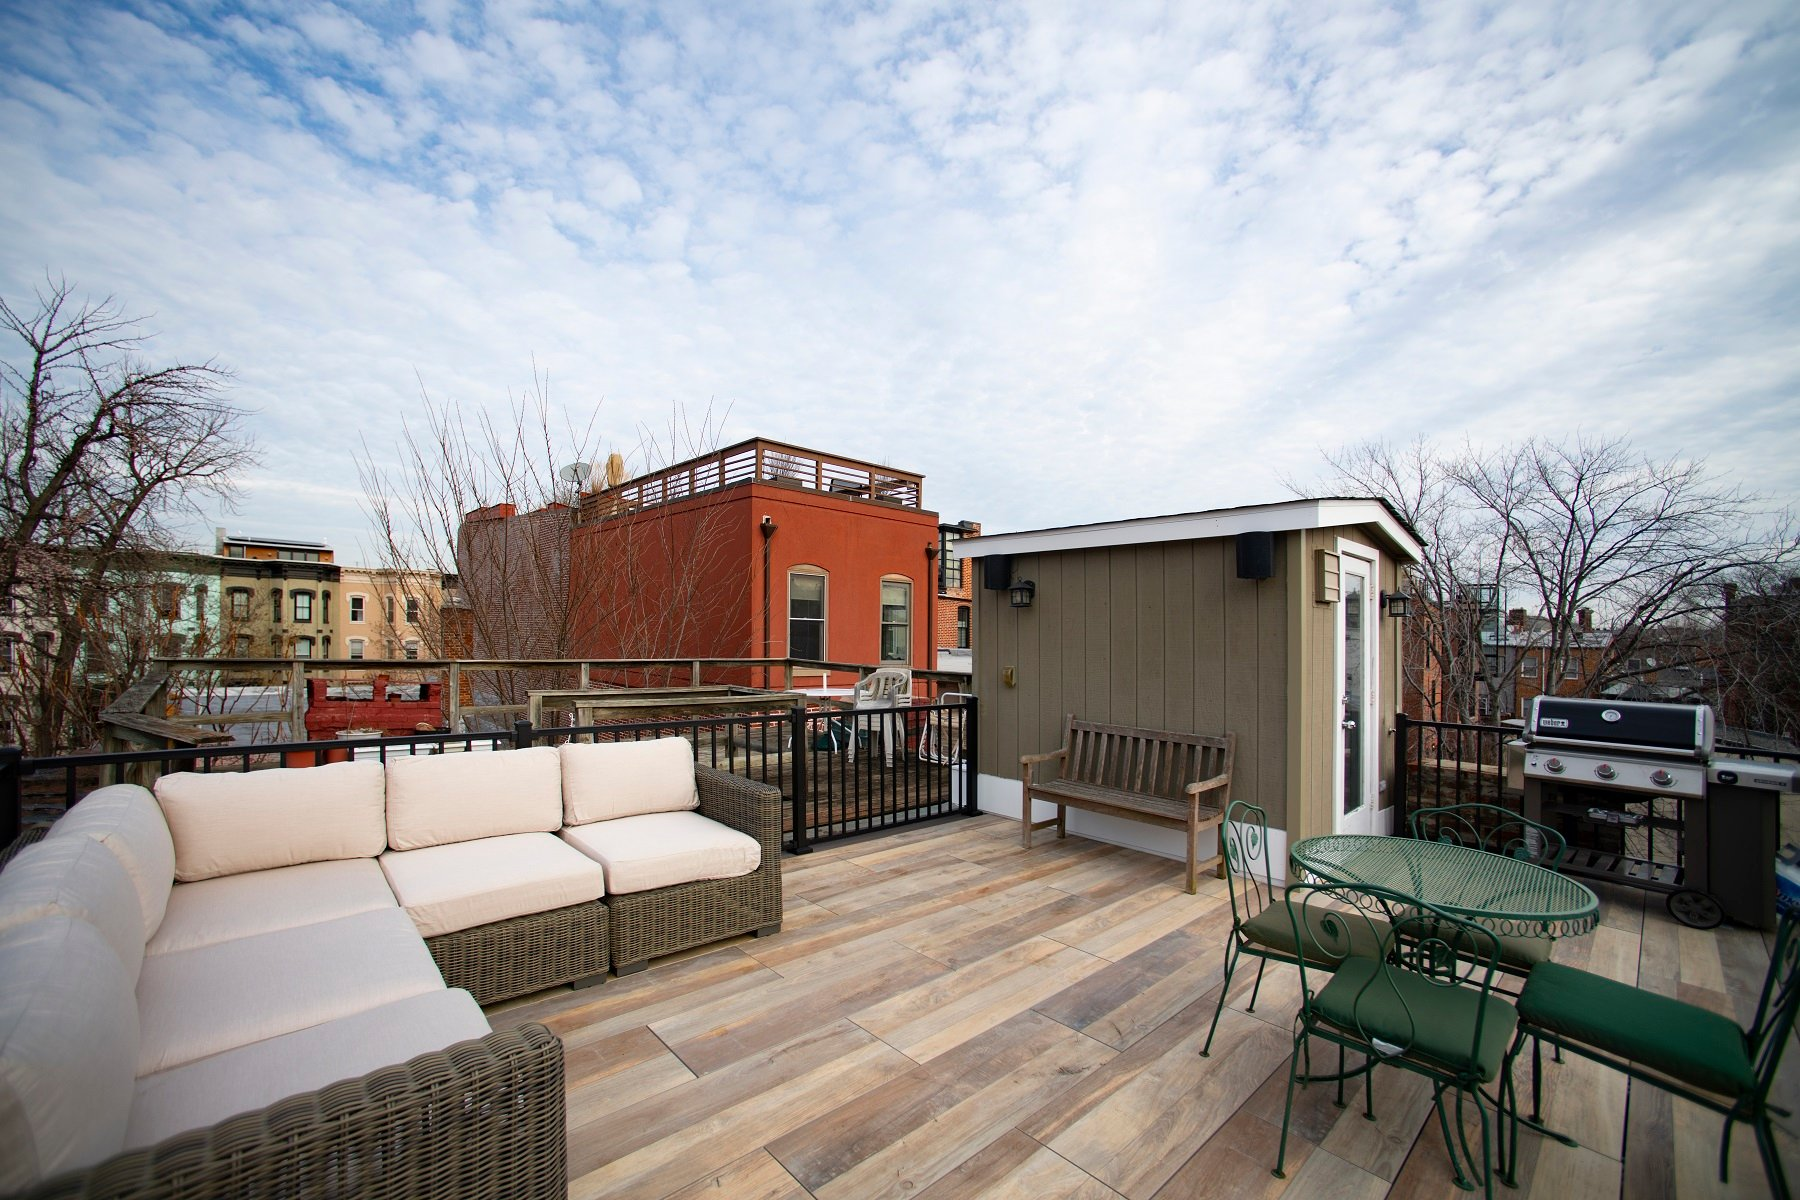 logans-circle-rooftop-deck-with-archatrak-deck-tiles (2)